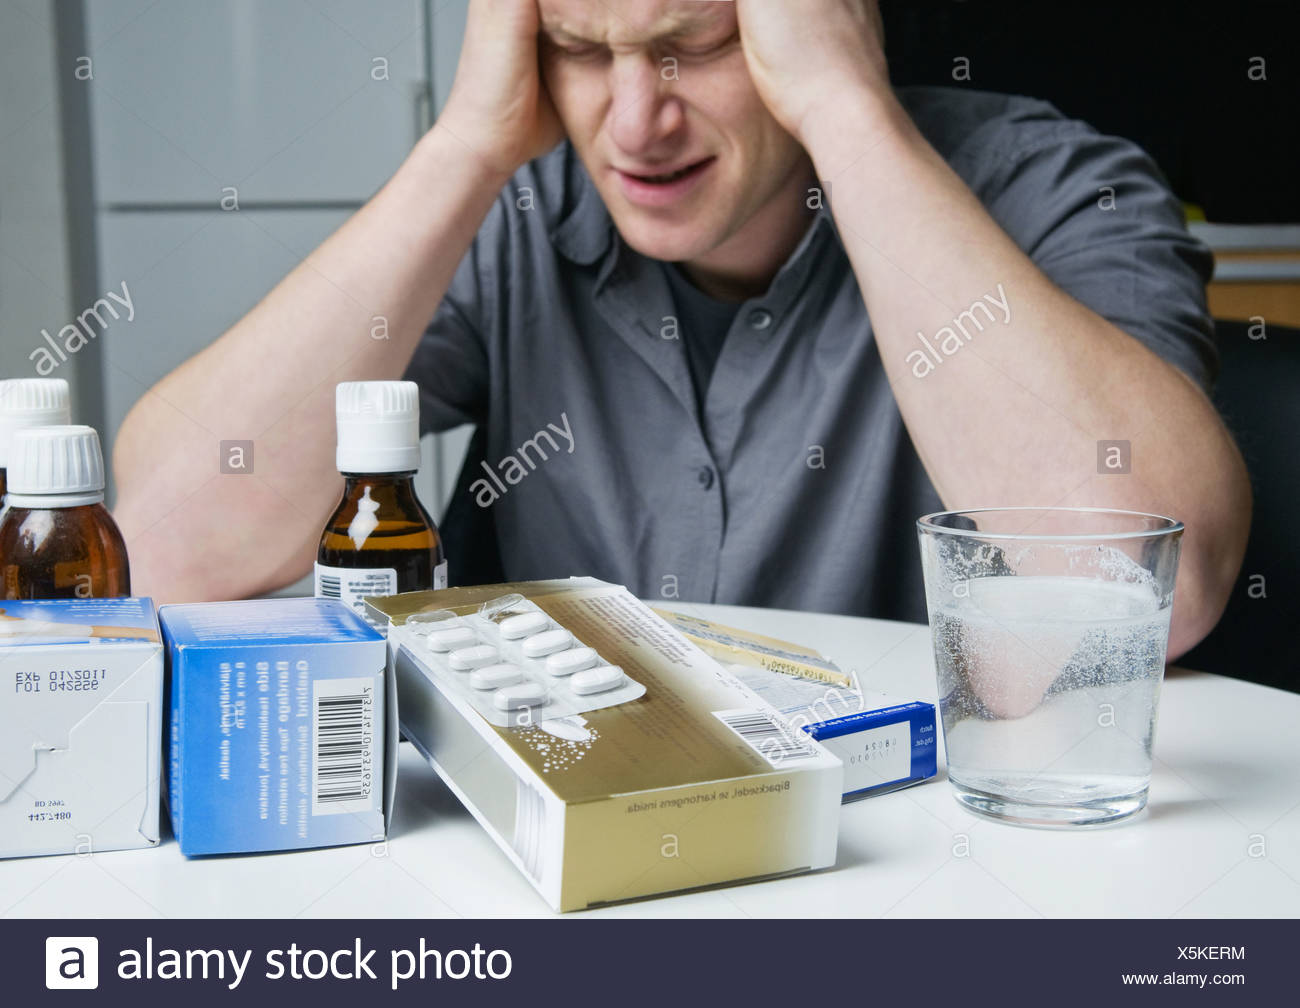 Man with a lot of medicine - Stock Image